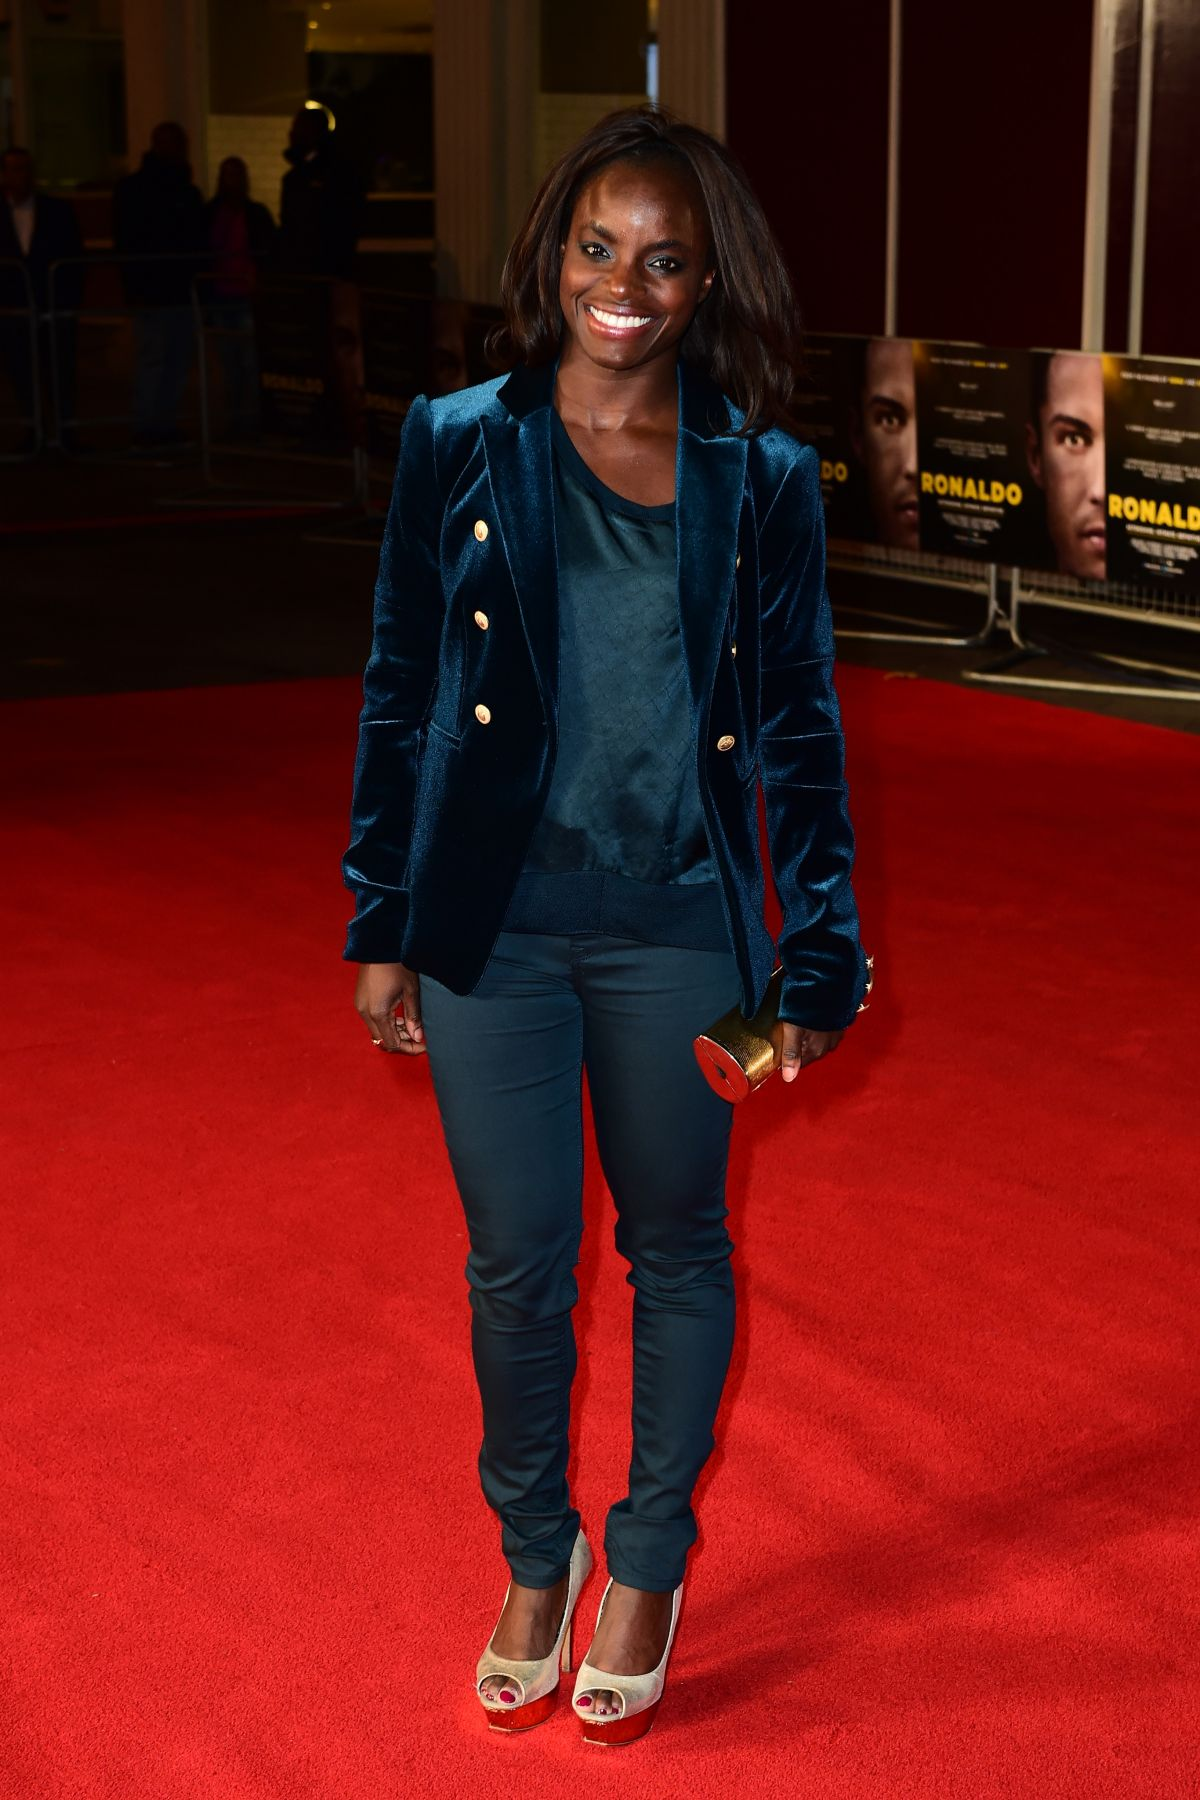 ENIOLA ALUKO at Ronaldo Premiere in London 11/09/2015